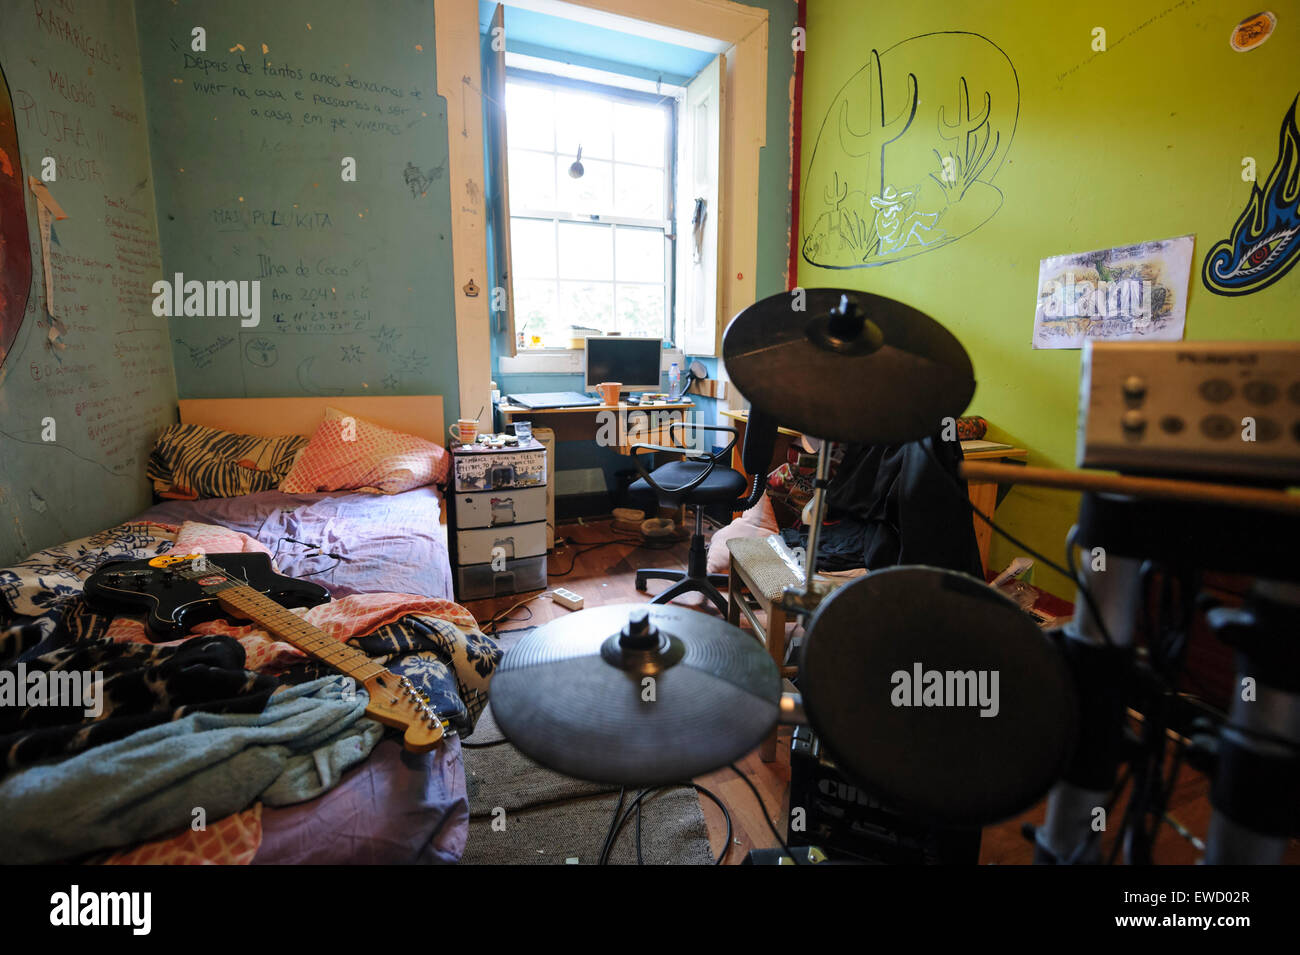 Small messy teenager bedroom with electronic drums kit and guitar on top of the unmade bed - Stock Image